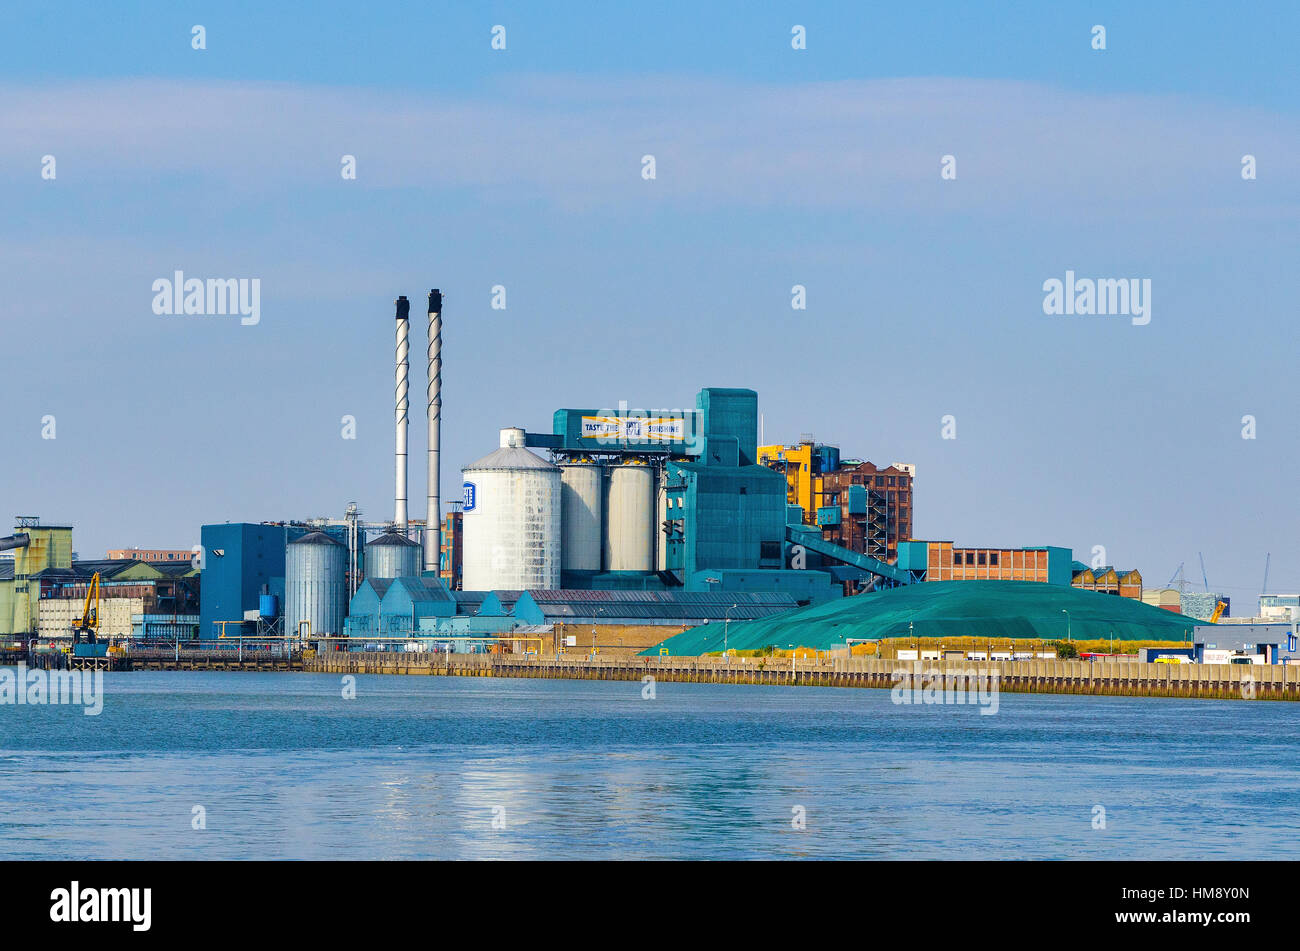 The Tate and Lyle Sugar refinery on the north bank of the River Thames at Silvertown, East London. - Stock Image